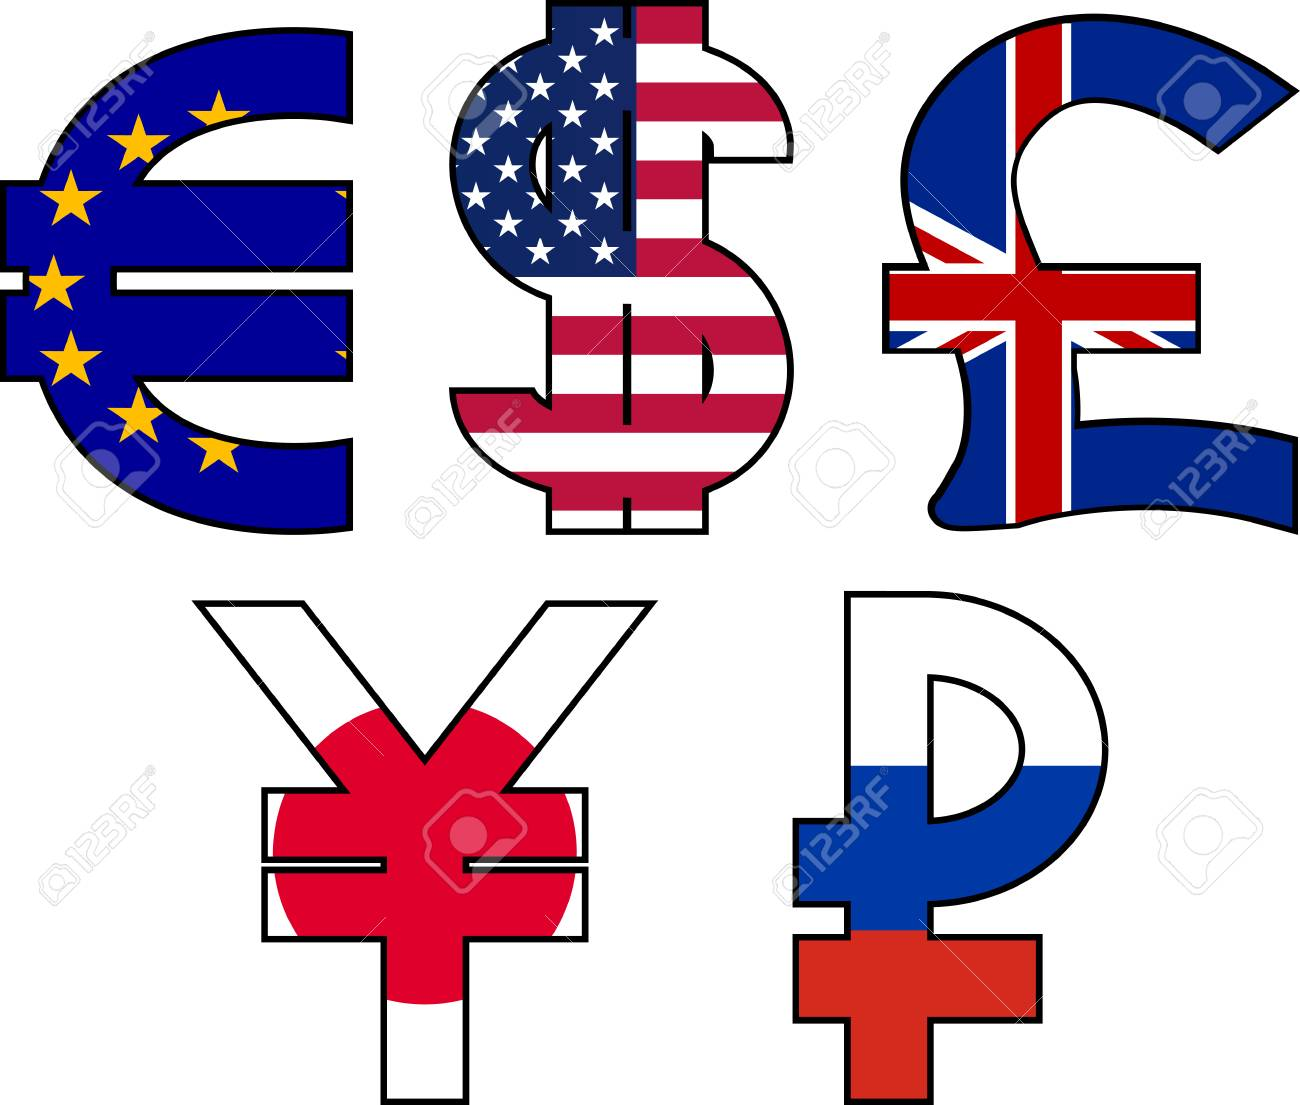 Currency Symbols Illustration Royalty Free Cliparts Vectors And